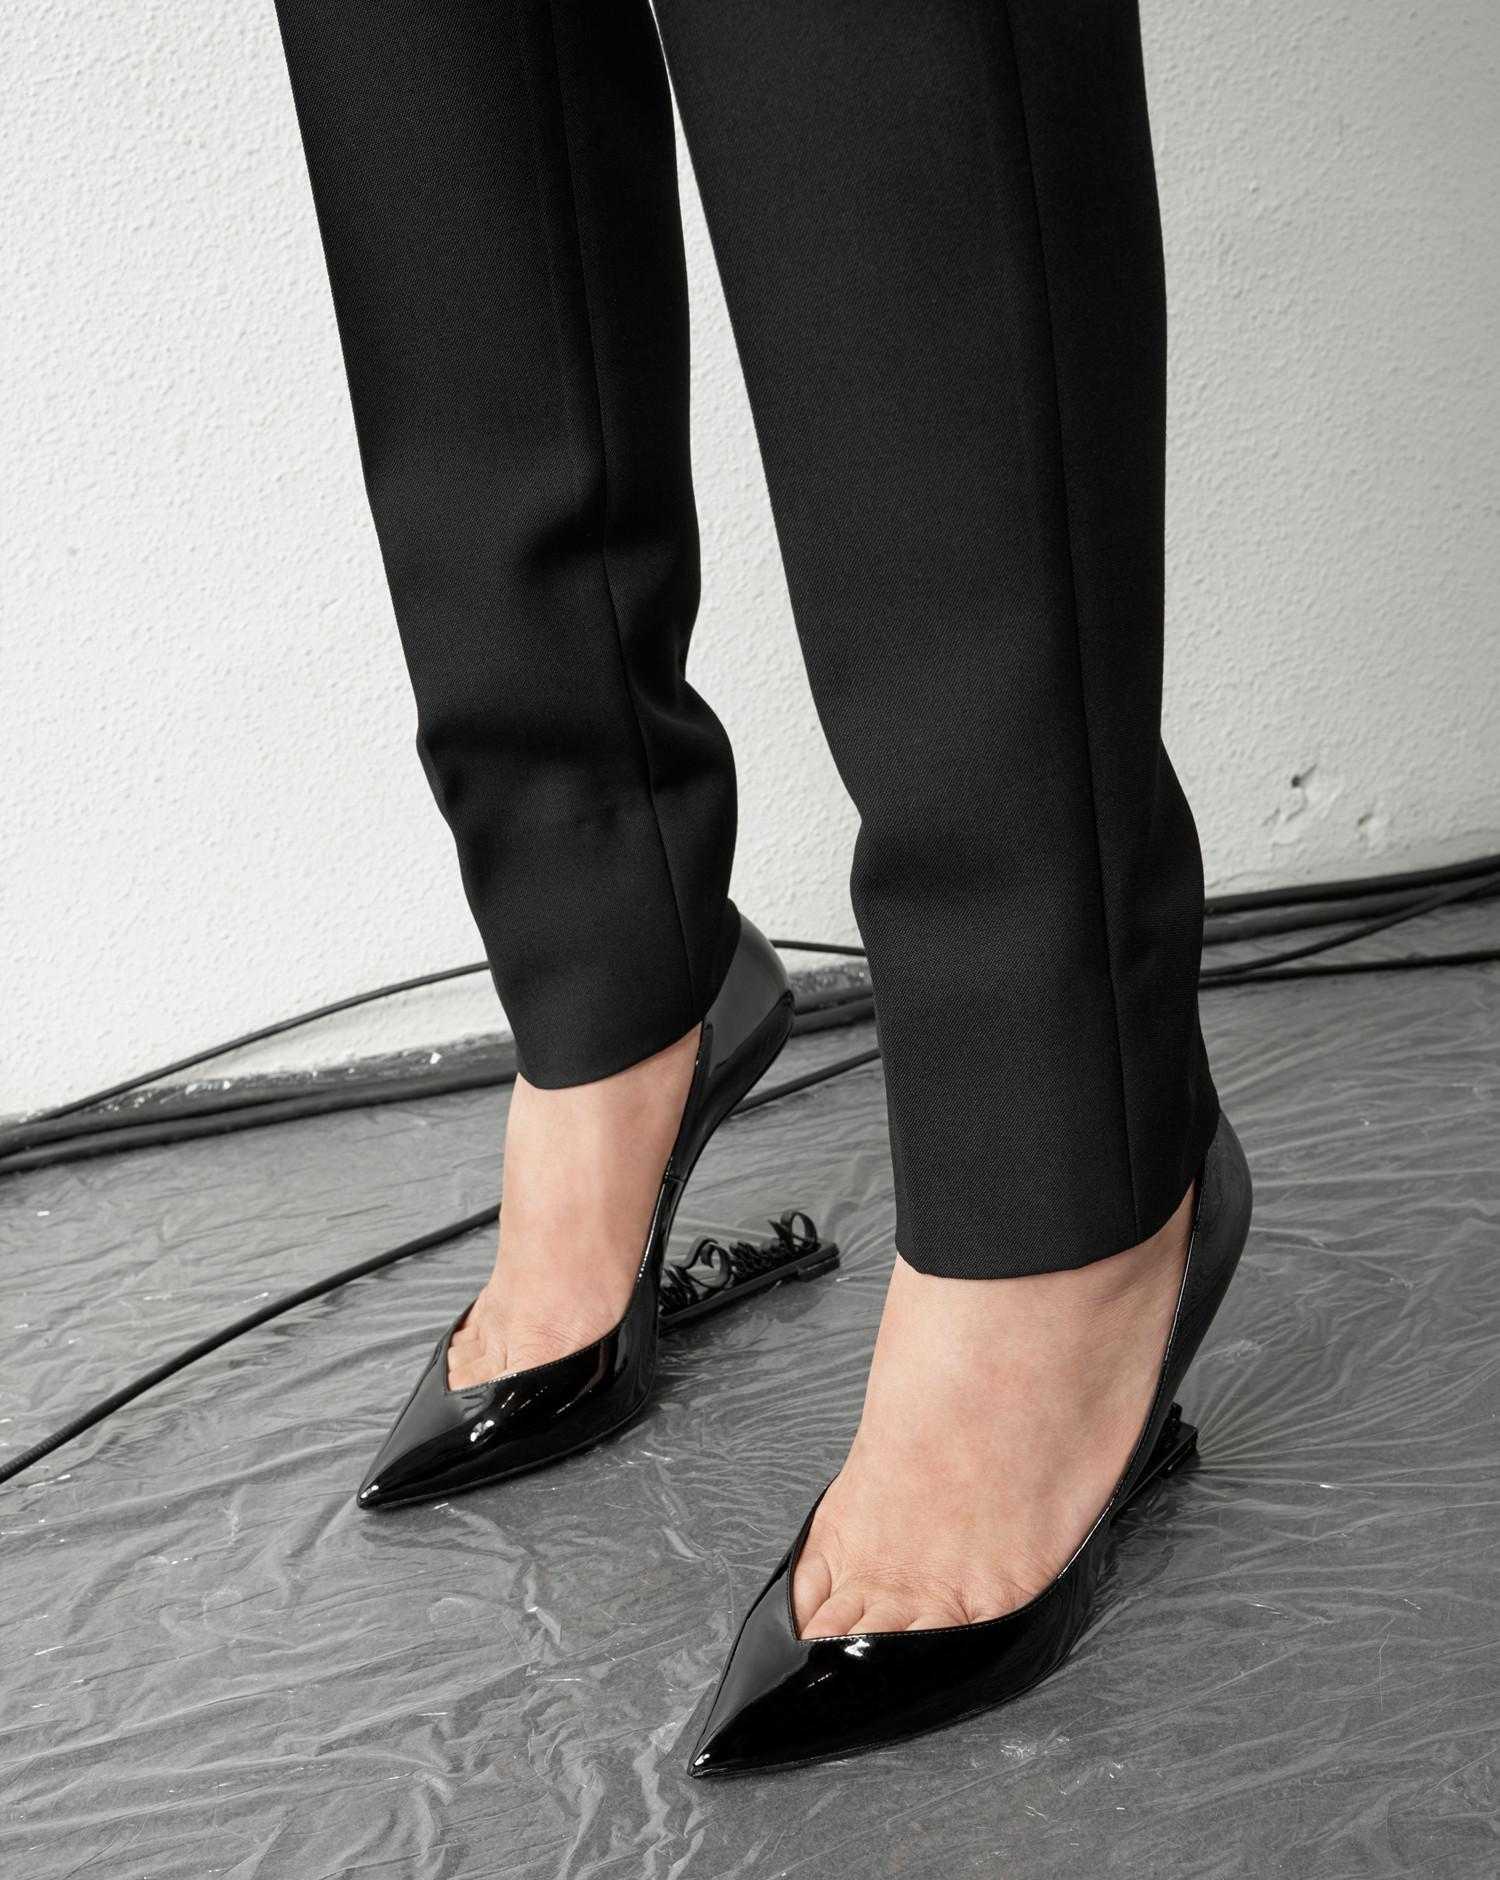 saint laurent opyum pumps nwt frefbd0